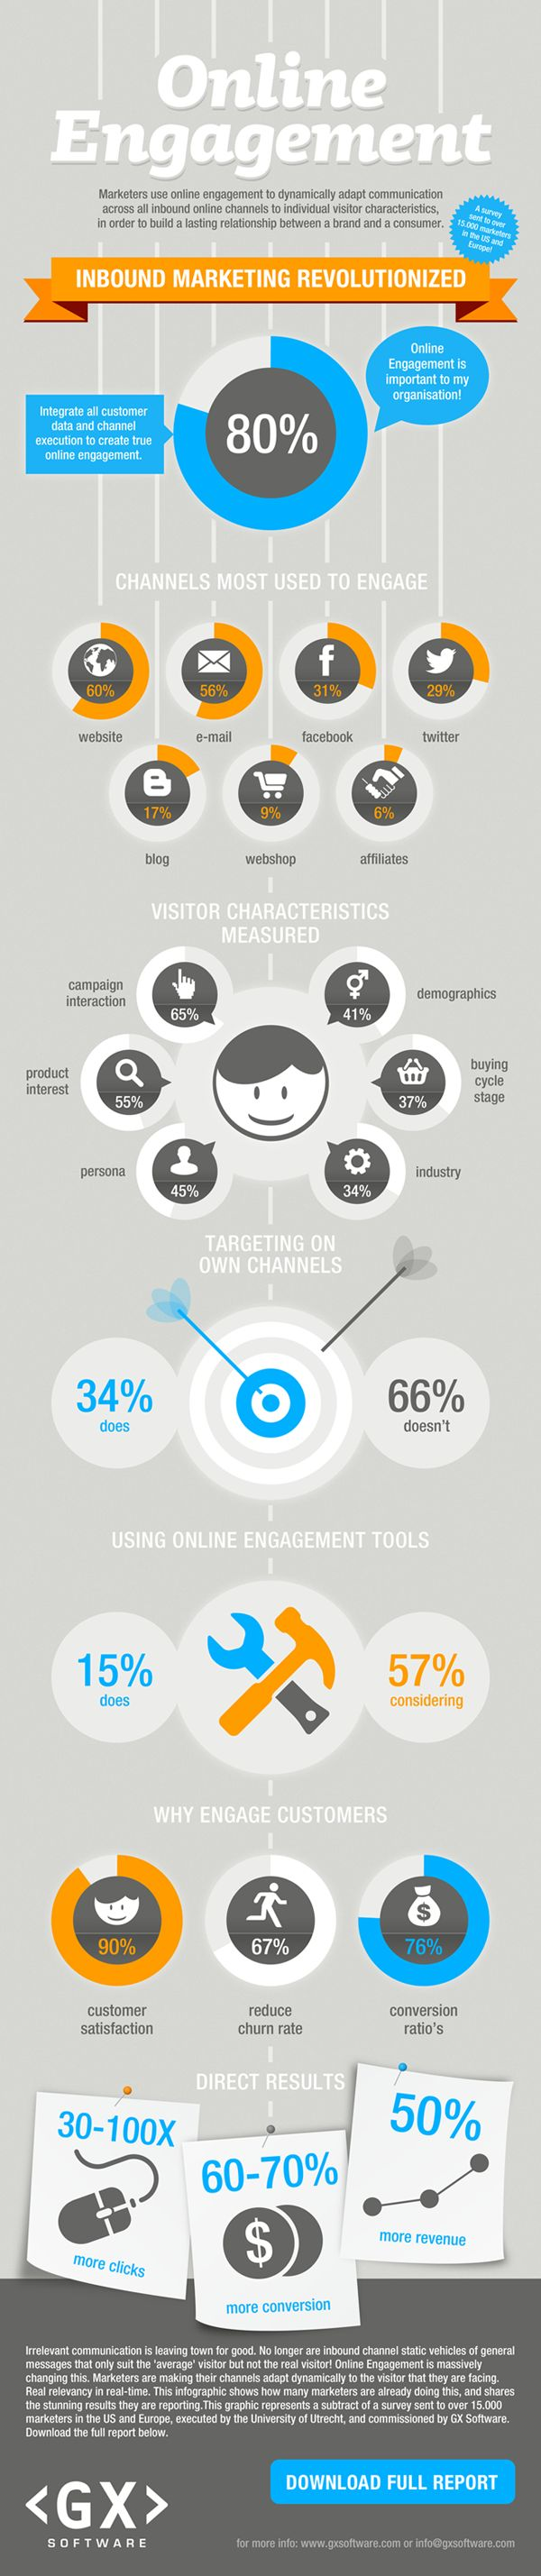 Online Engagement [INFOGRAPHIC] – Infographic ListOnline Engagament